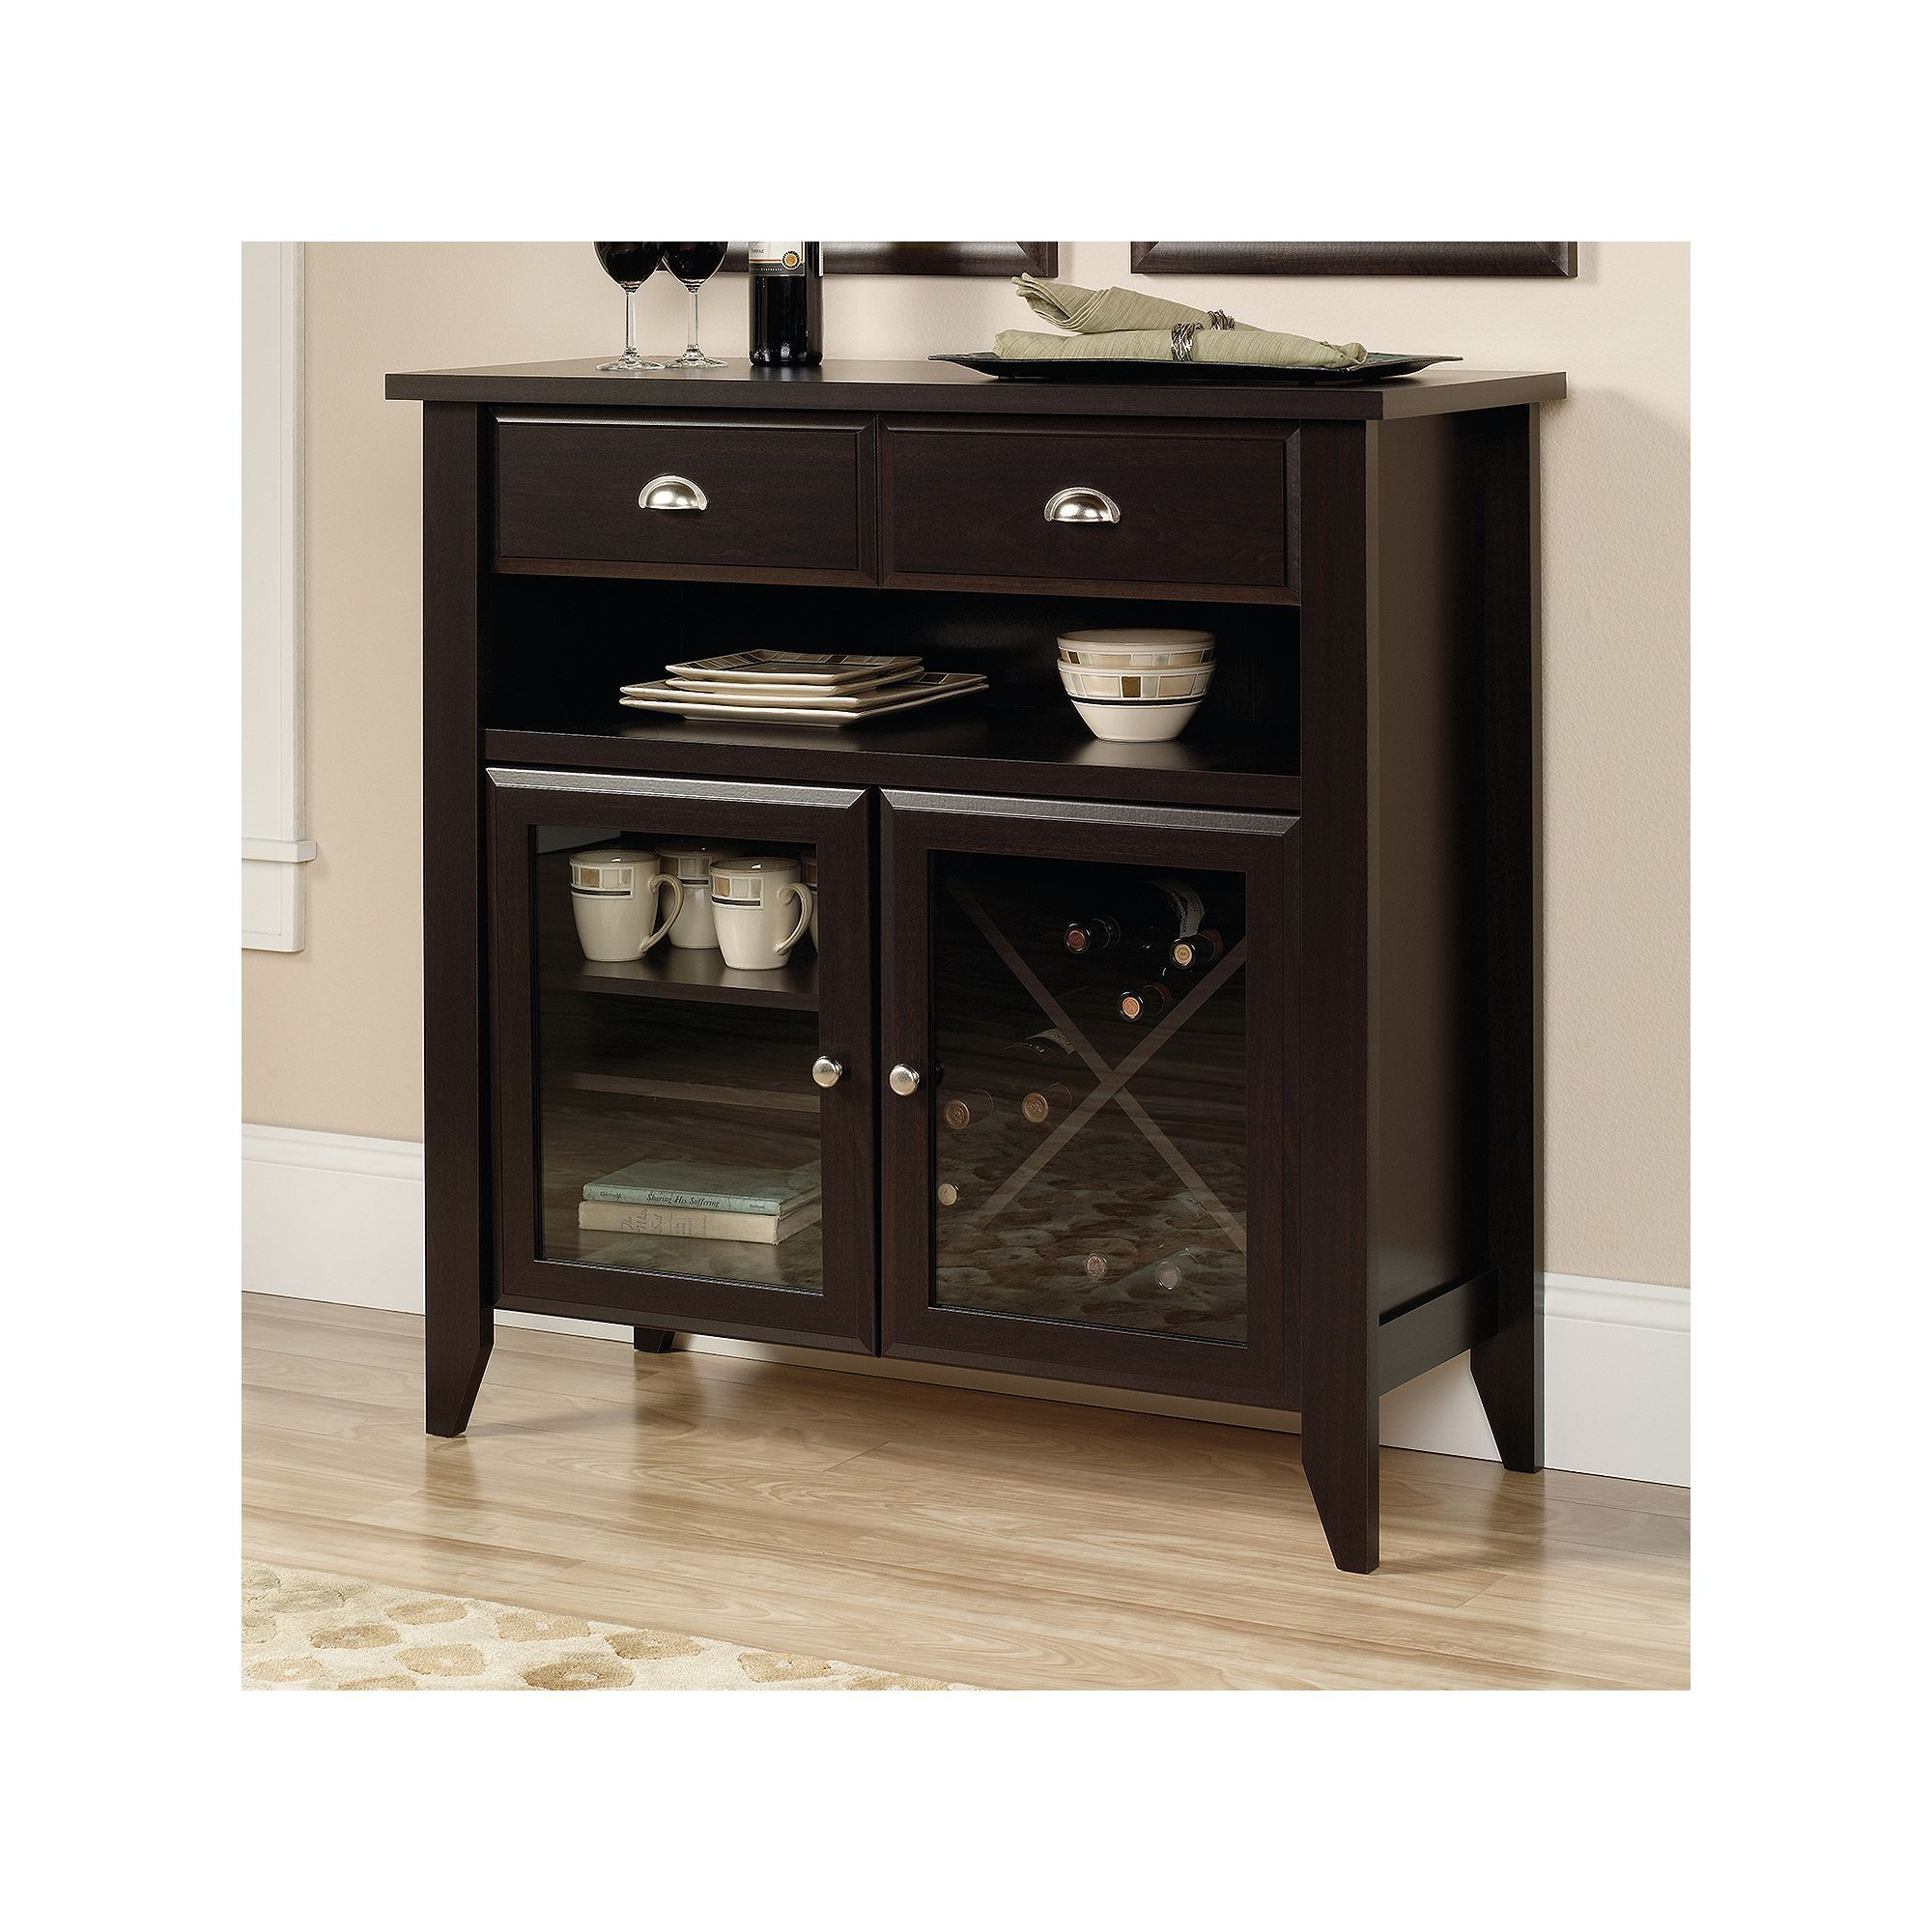 converse small and cabinets sidell accent bayside cabinet burbach windham kyrie whitewashed mirimyn chests coastal acadian door target white one storage coyne mullis round table